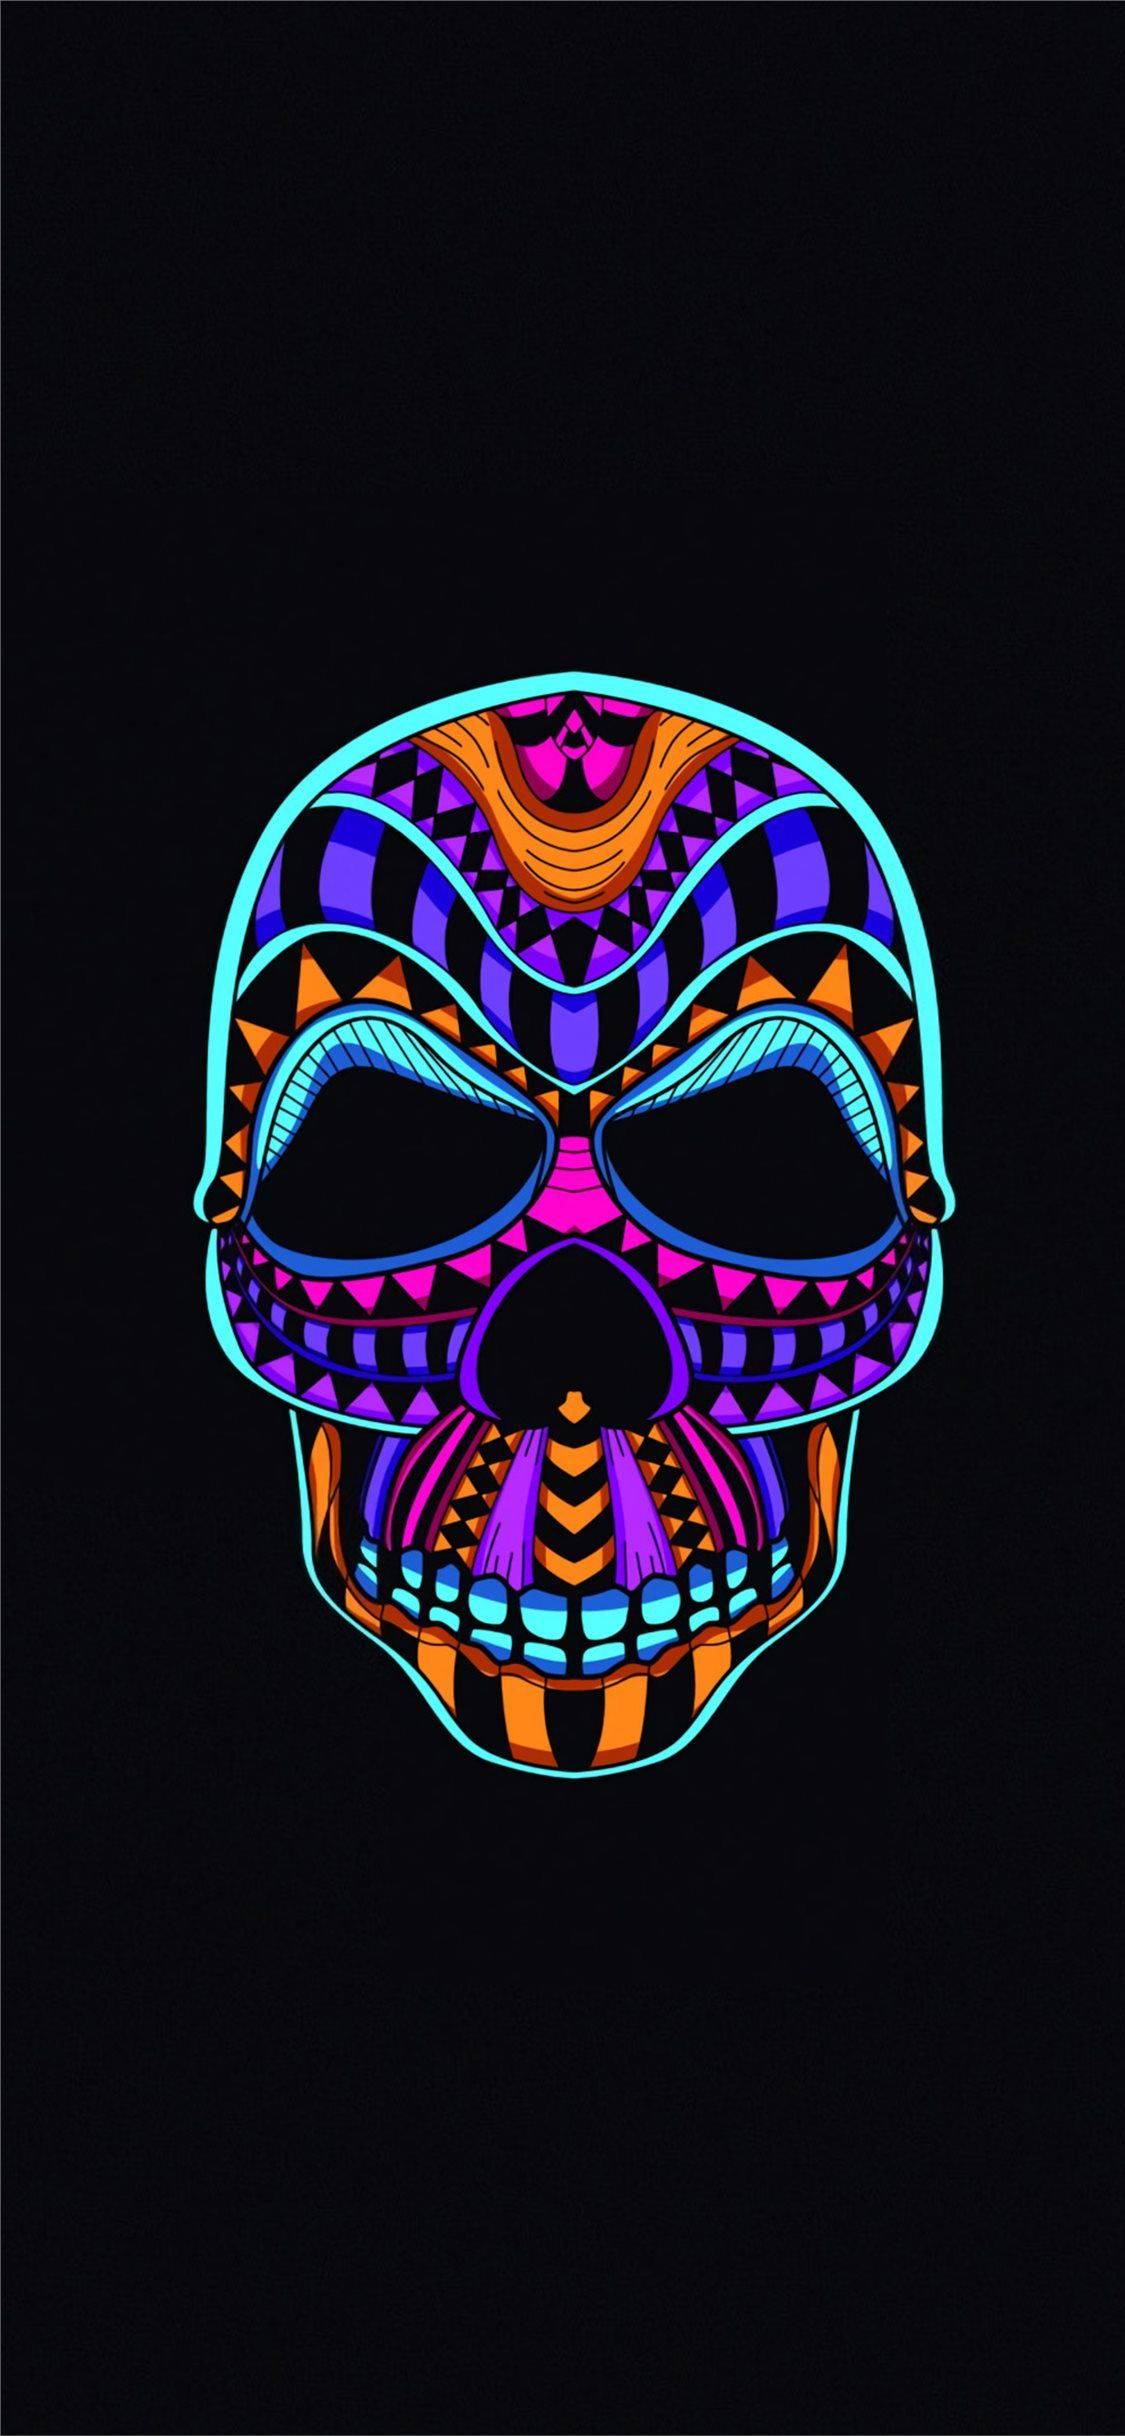 Free Download The Skull Dark Minimal 4k Wallpaper Beaty Your Iphone Skull Dark Oled 4k Mi In 2020 Skull Wallpaper Android Phone Wallpaper Black Phone Wallpaper